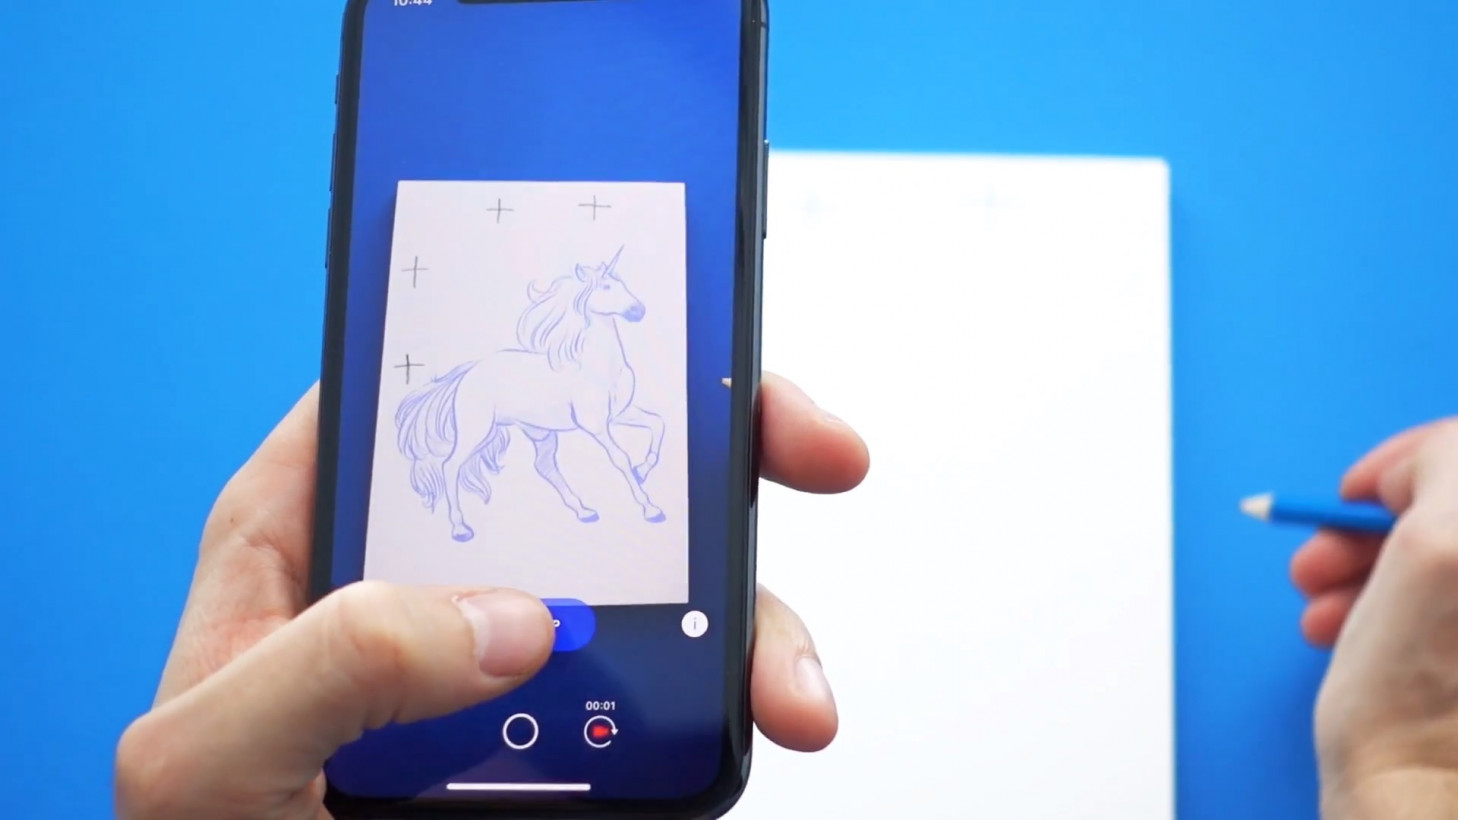 This app uses machine learning and AR to teach you how to draw